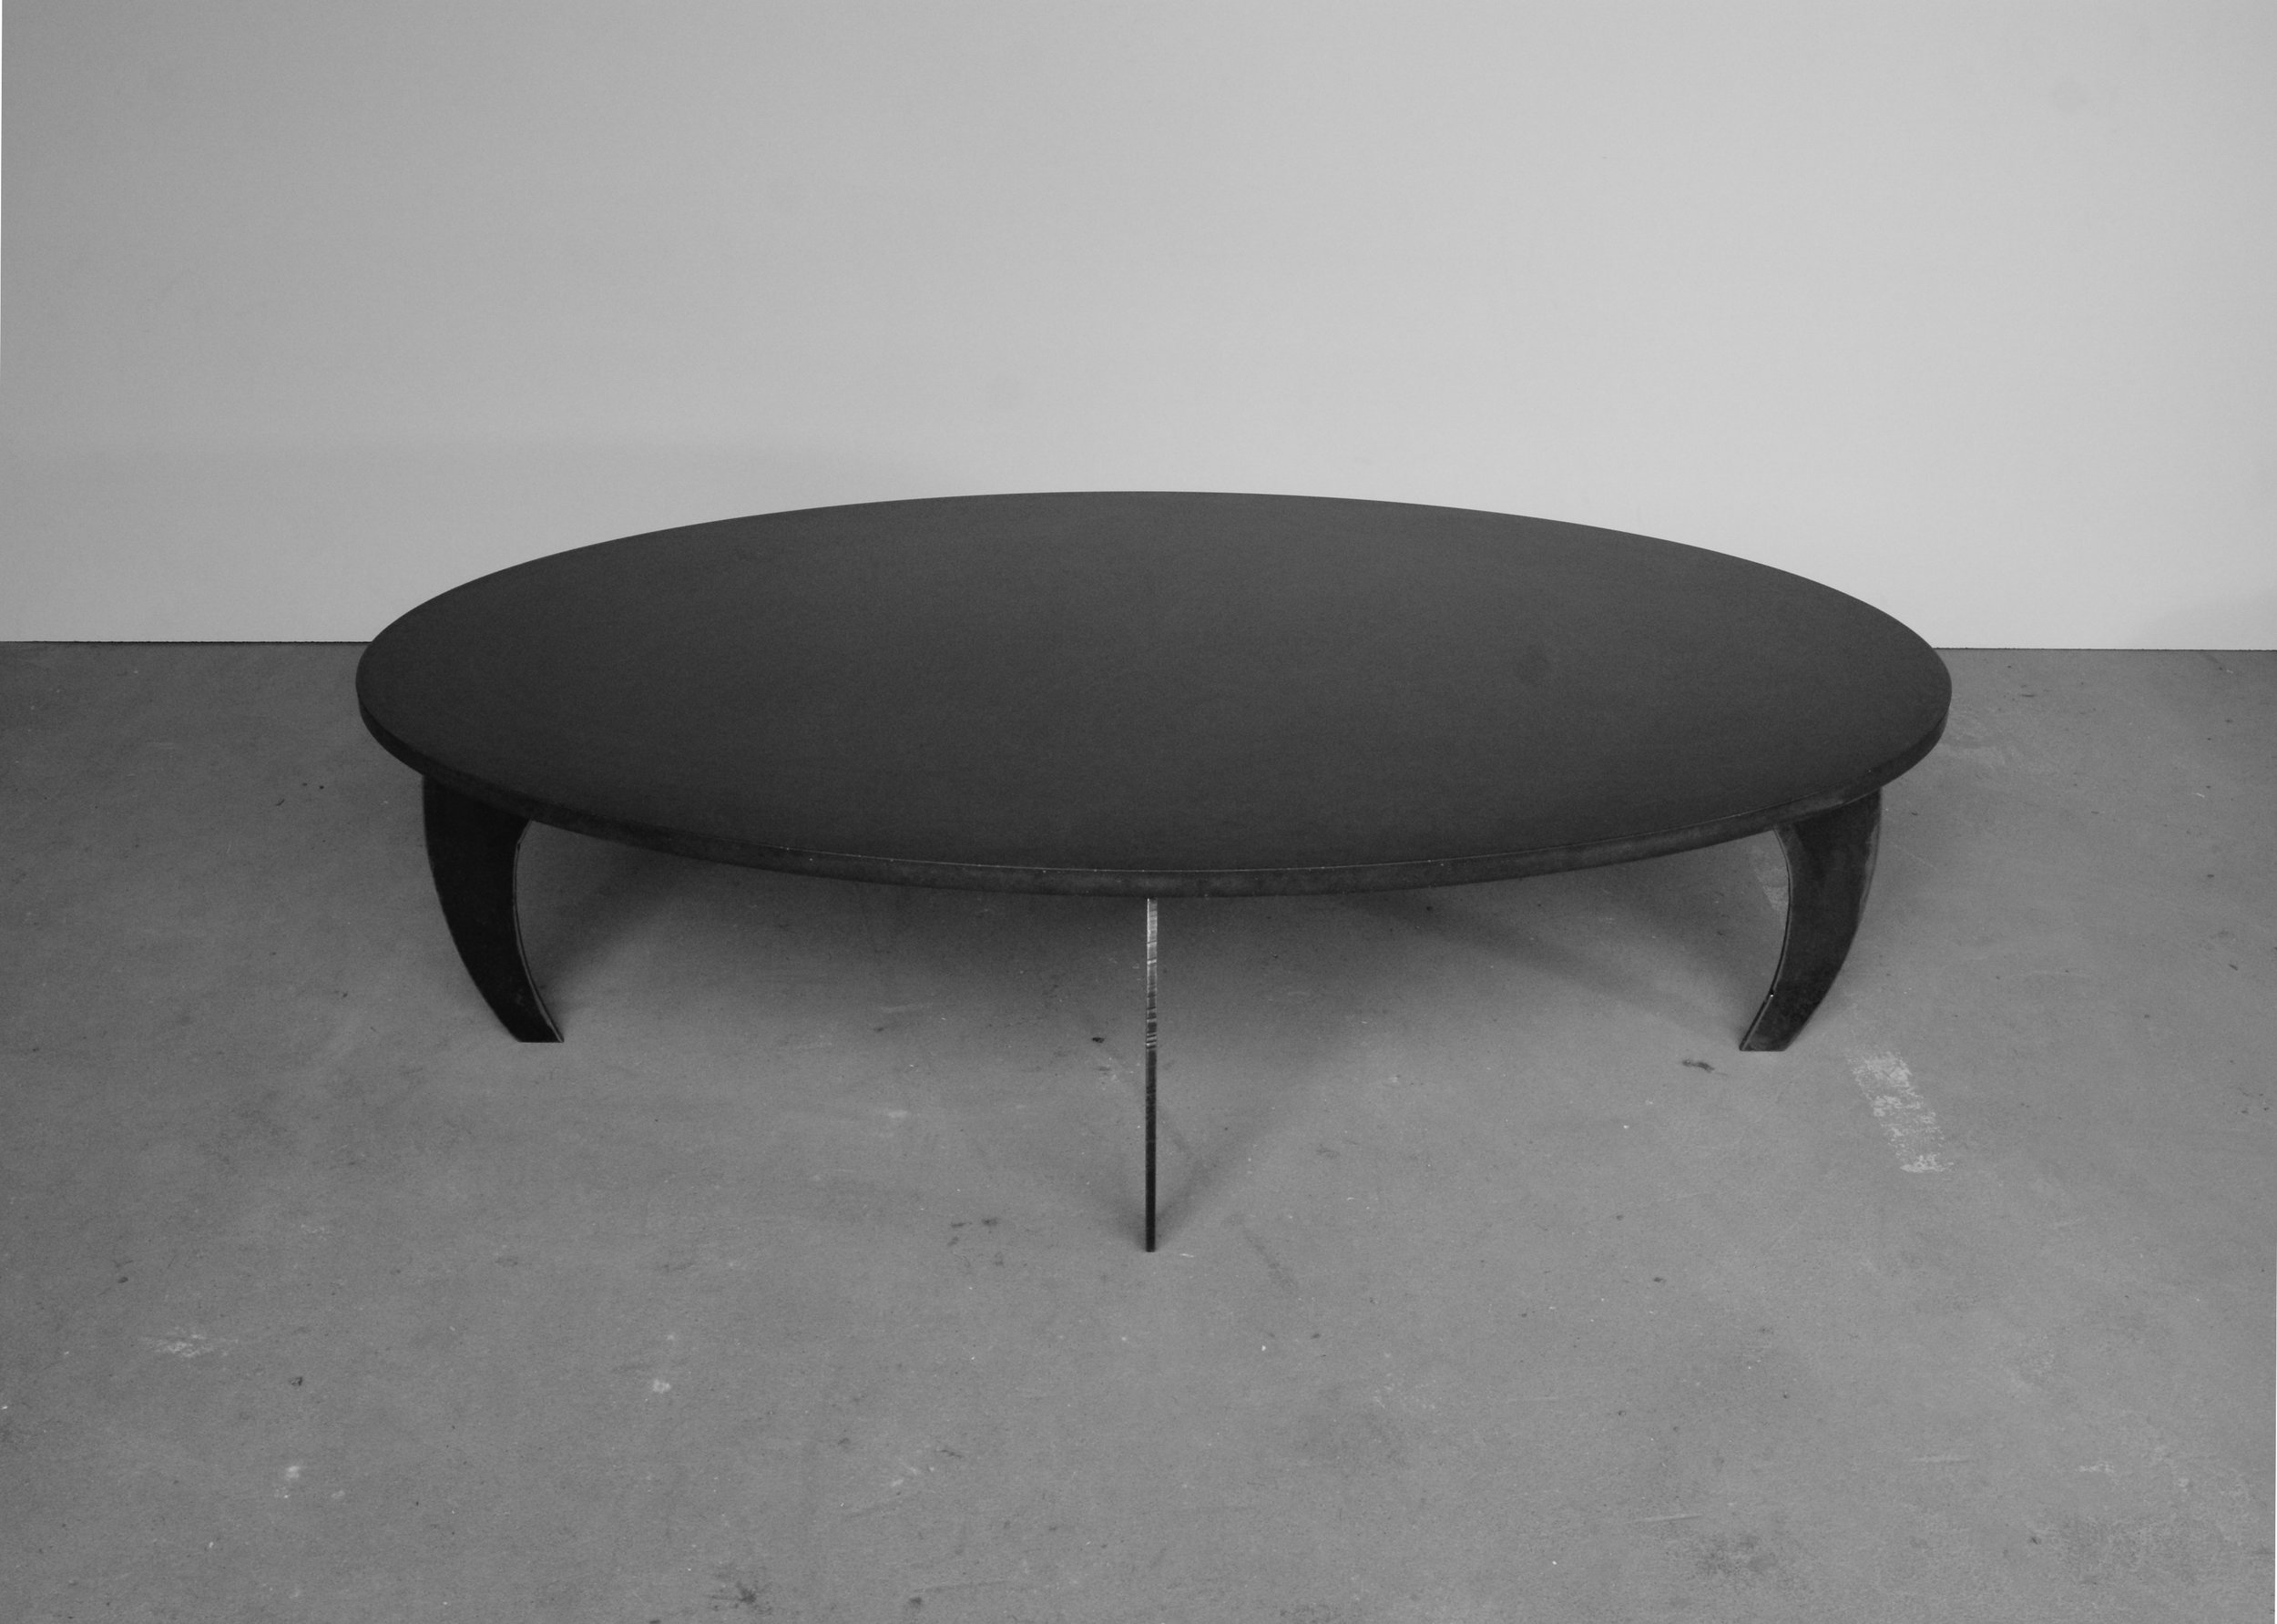 Table Basse En Beton Table Basse BÉton L Ellipse E²